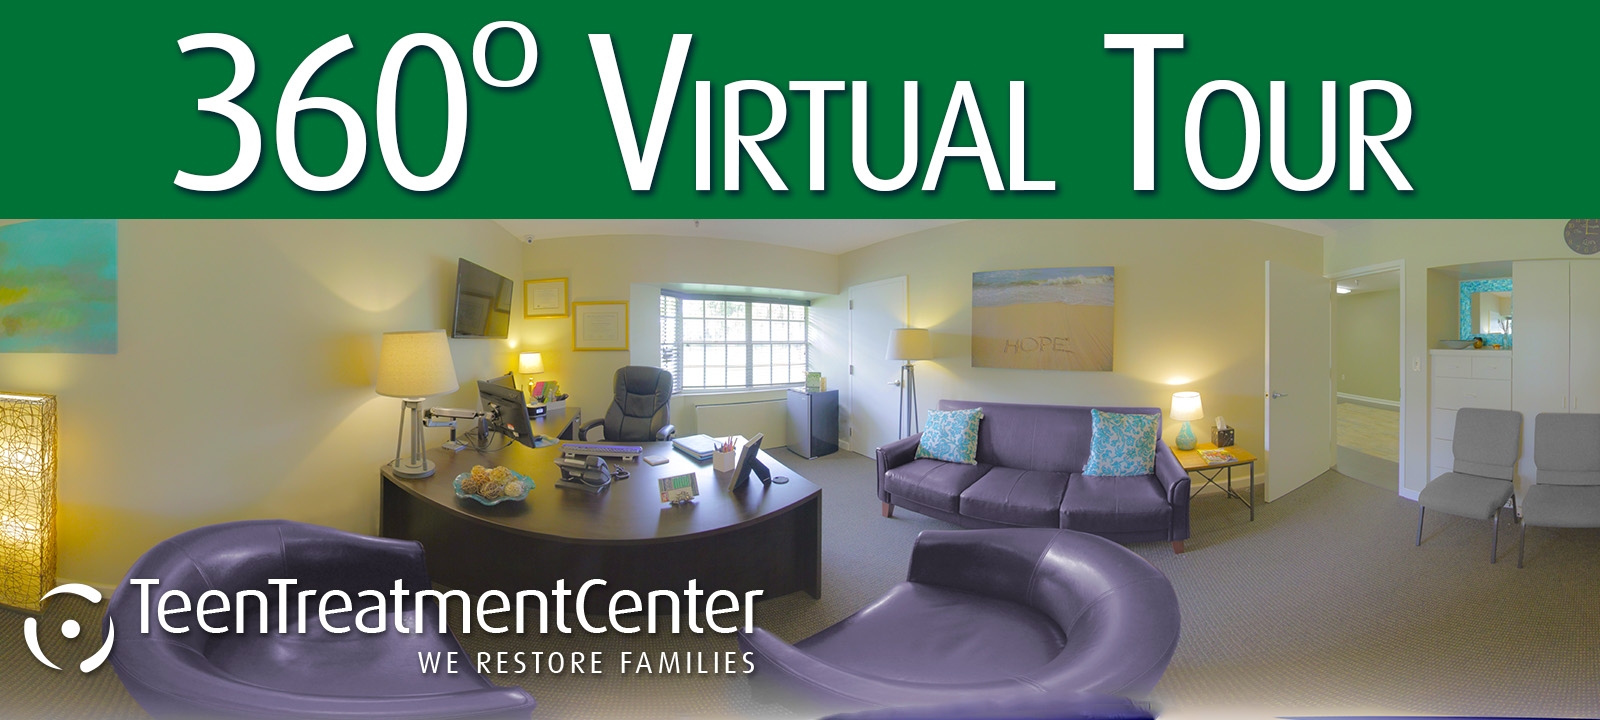 Take a Virtual Tour of Teen Treatment Center